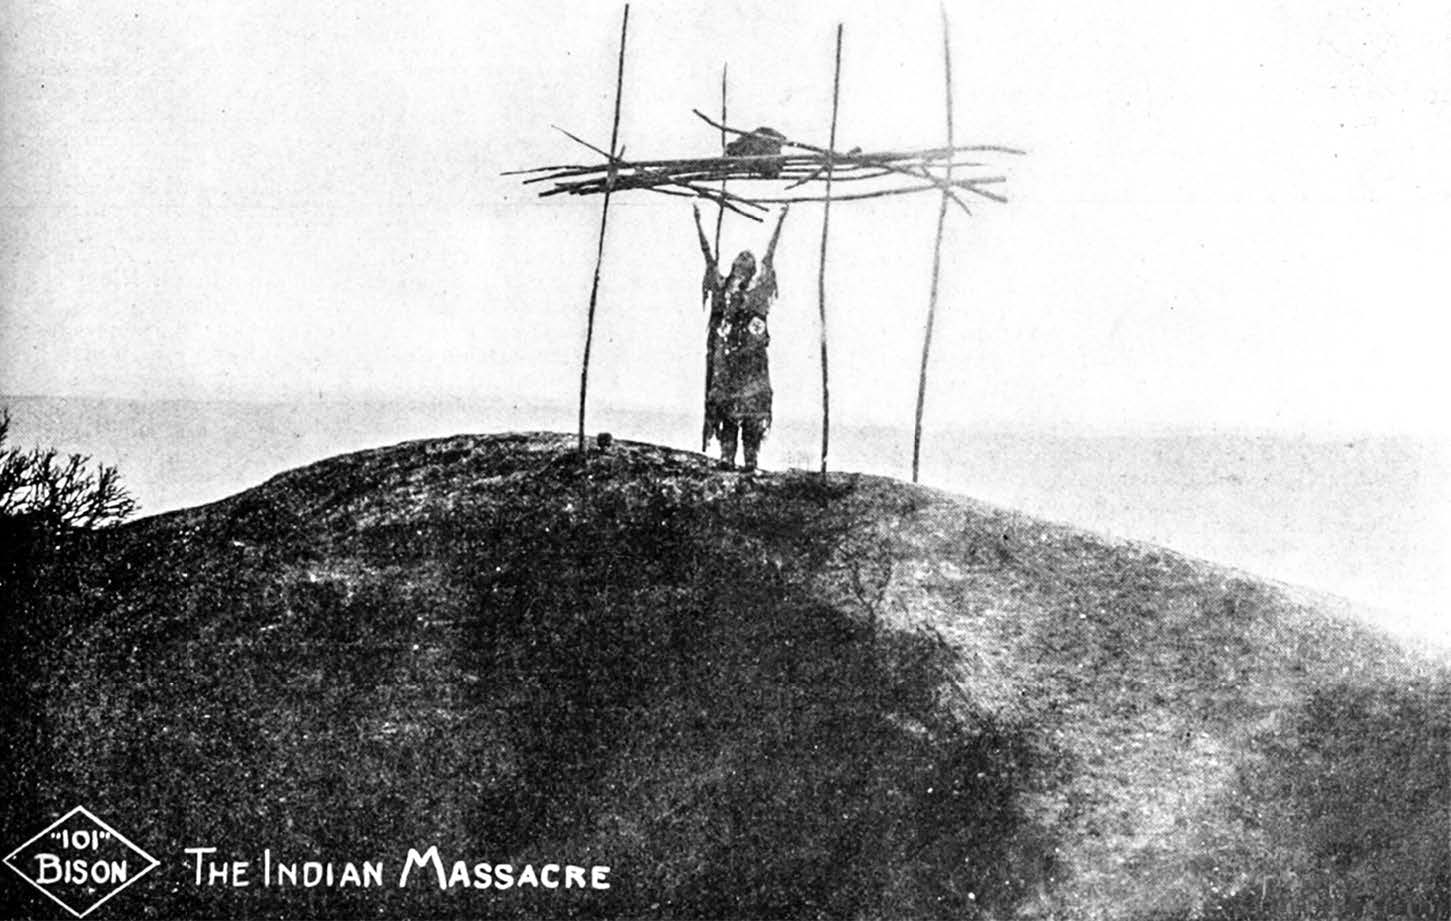 The Indian Massacre (101 Bison, 1912).